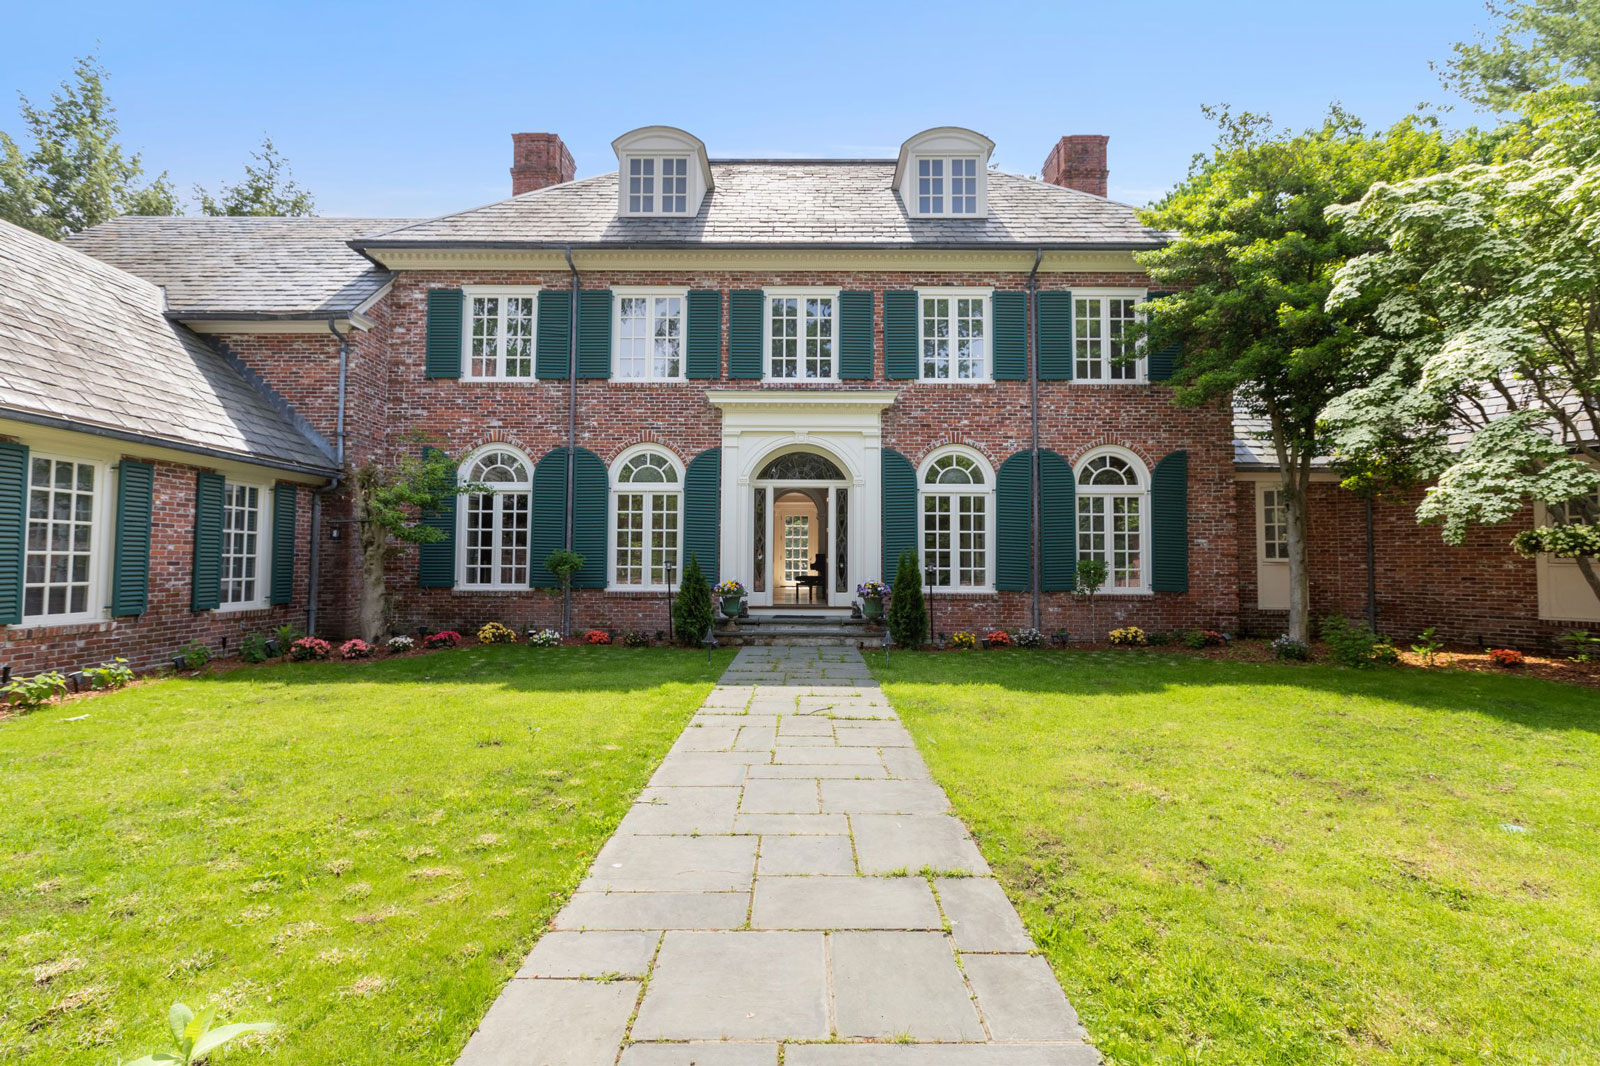 Front view of 14 Dellbrook Rd, Weston, MA